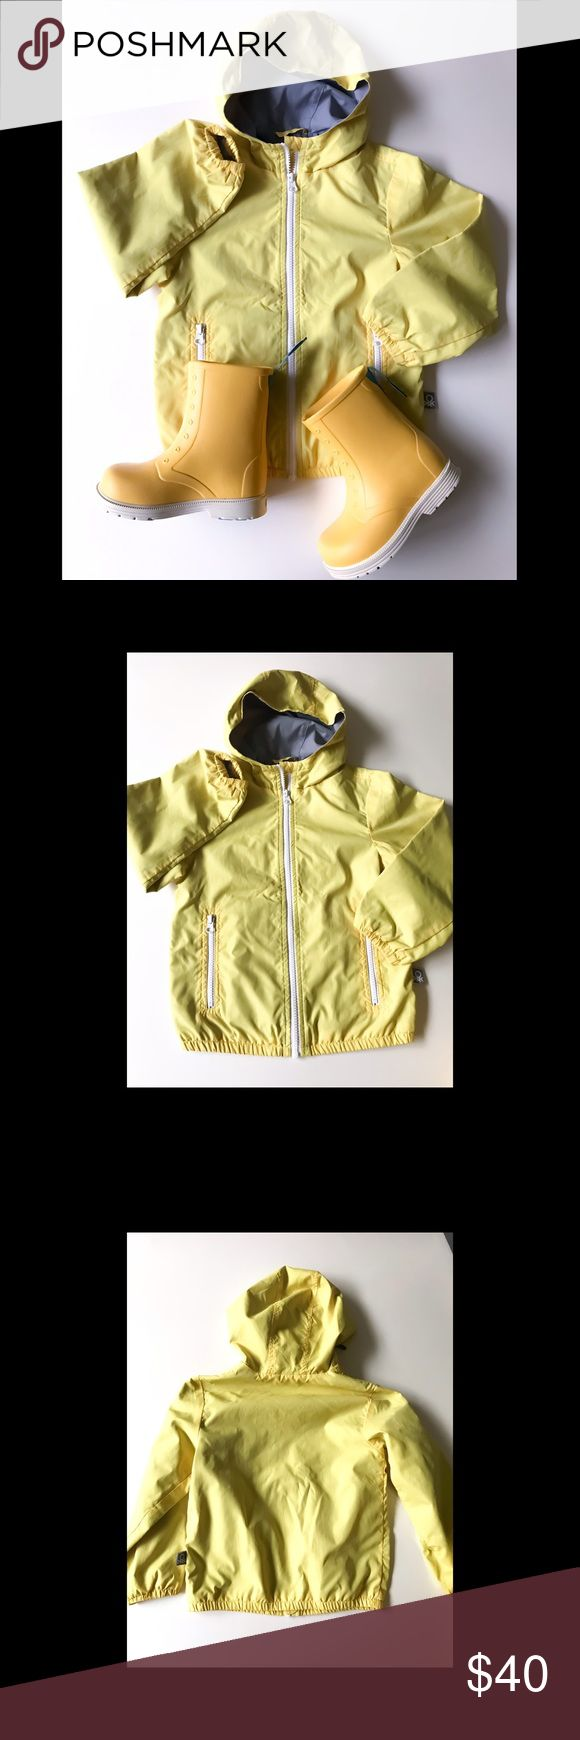 Unisex Set of Rain Coat & Rain Boots BUNDLE price for super cute yellow lightweight Benetton raincoat (4/5T) and Native yellow rain boots (C12) Unisex Both are in perfect condition, the boots are like new-as my son could wear them only once 😢 He just does not like tall boots.. Native boots retail for 50$ Native Shoes Jackets & Coats Raincoats